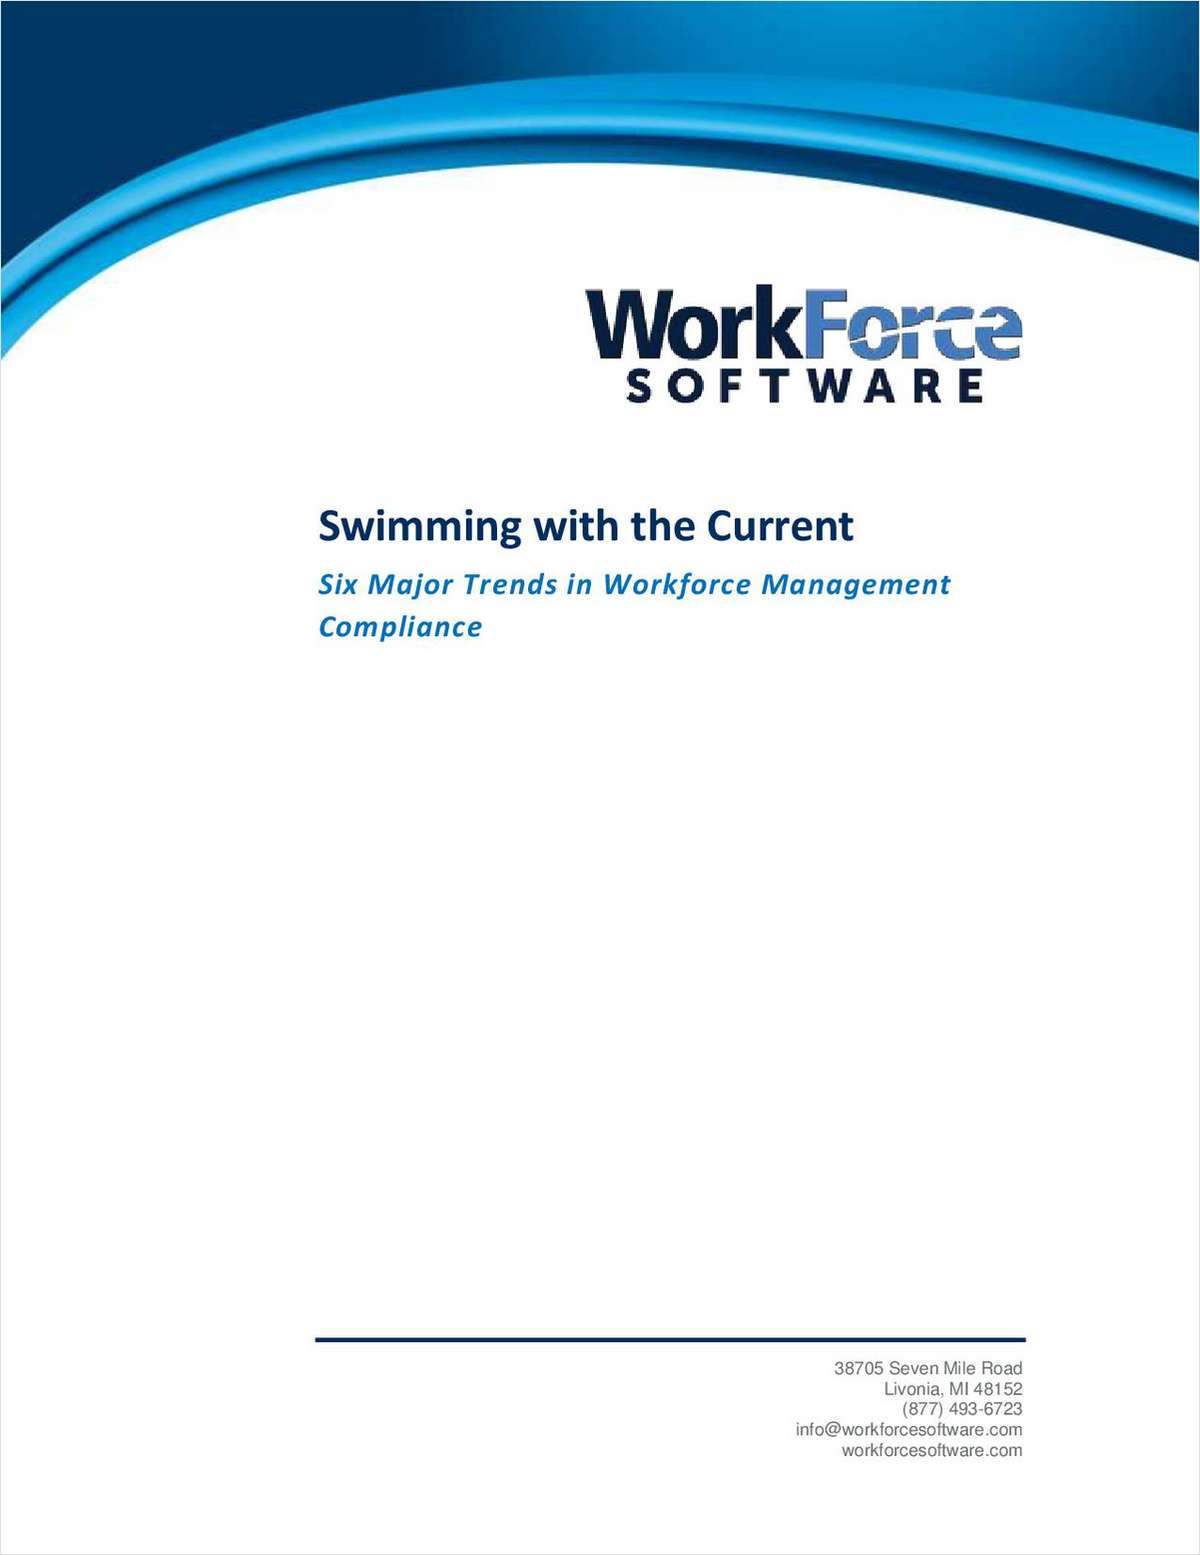 Swimming with the Current: Six Major Trends in Workforce Management Compliance